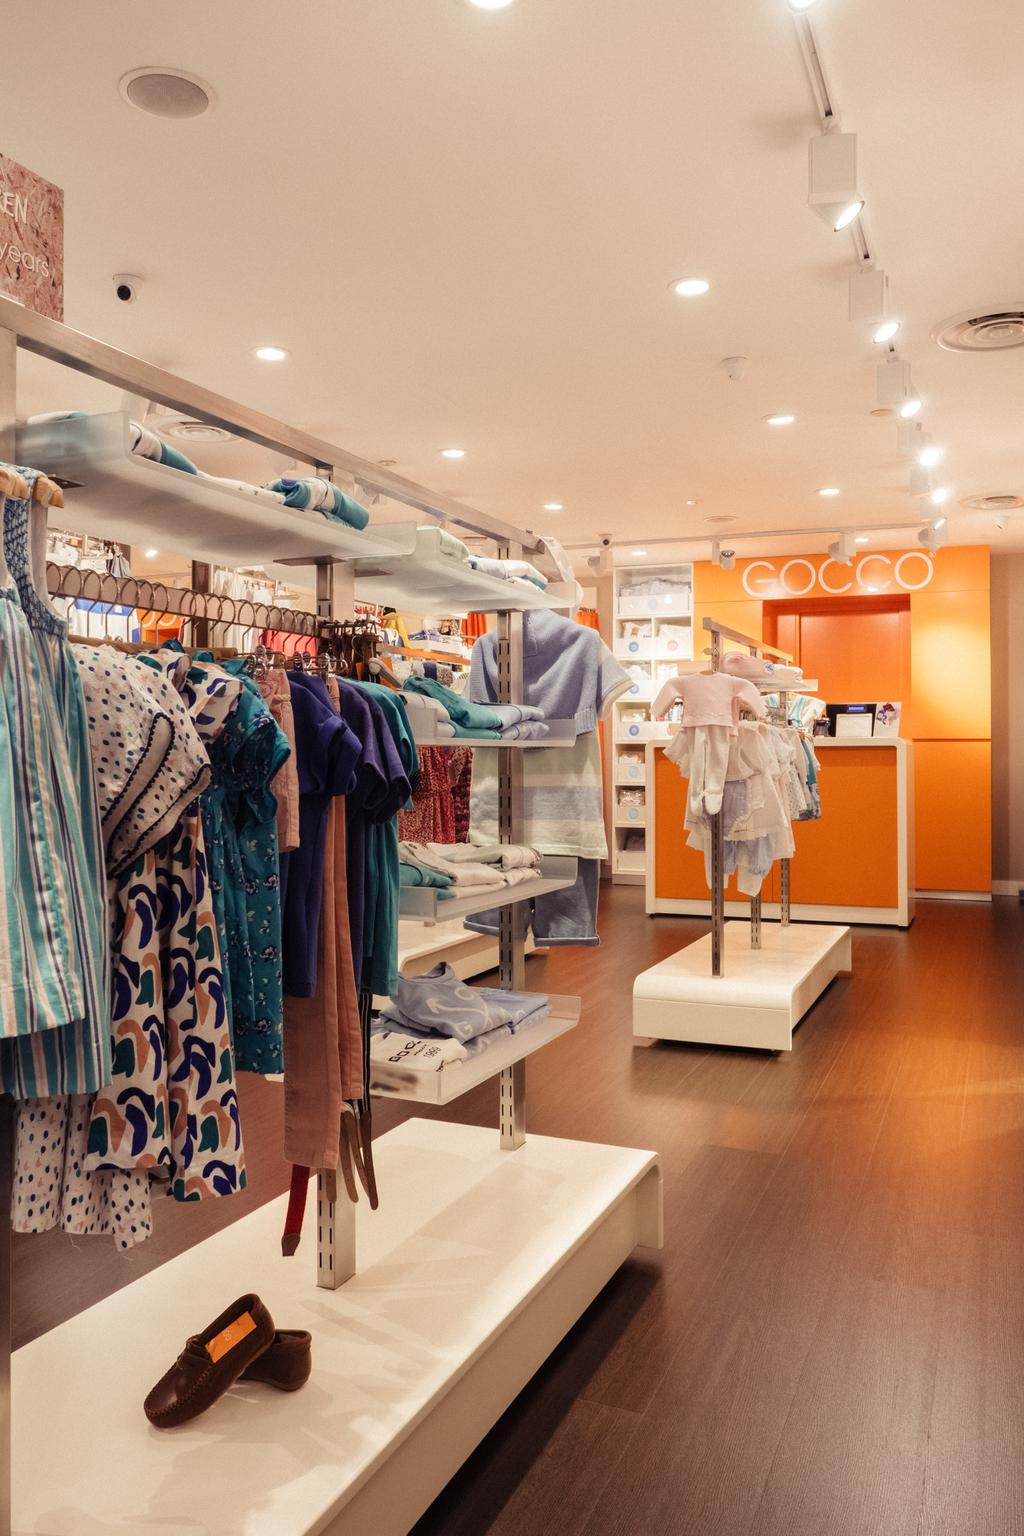 Gocco, Commercial, Interior Designer, Urban Habitat Design, Modern, Human, People, Person, Boutique, Shop, Apparel, Clothing